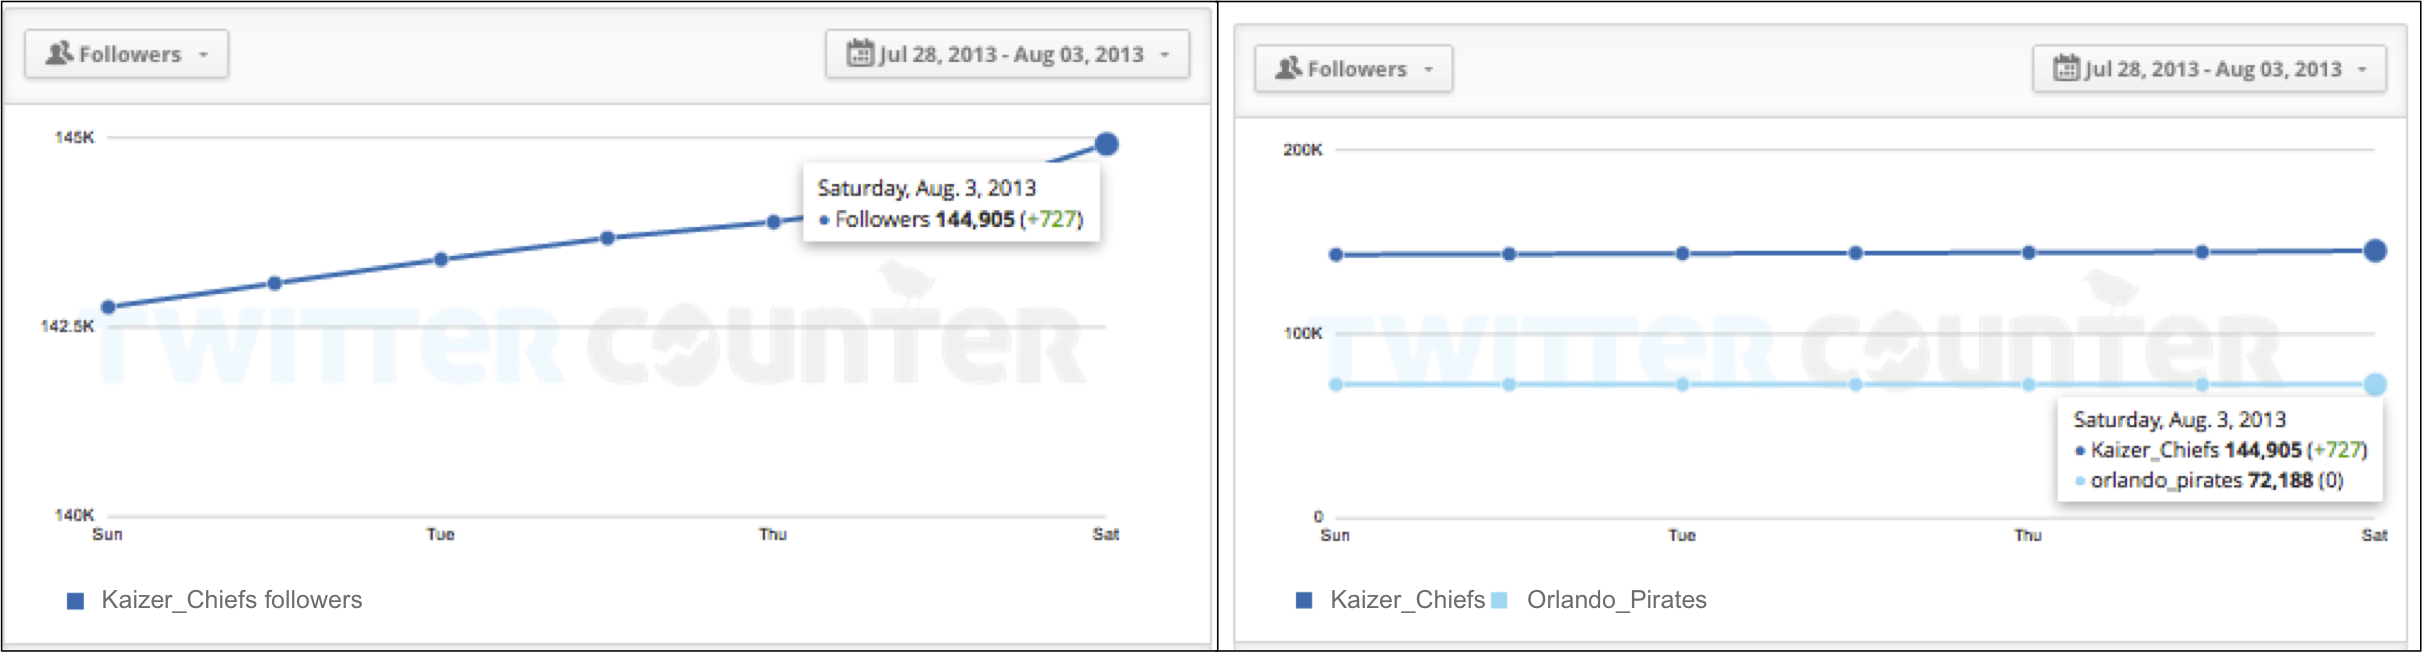 """<img src=http://""""Twitaholic_Followers_Chiefs_Pirates_August_2013.png""""?w=852&h=229 alt=""""Twitaholic Followers - Chiefs and Pirates August 2013"""">"""